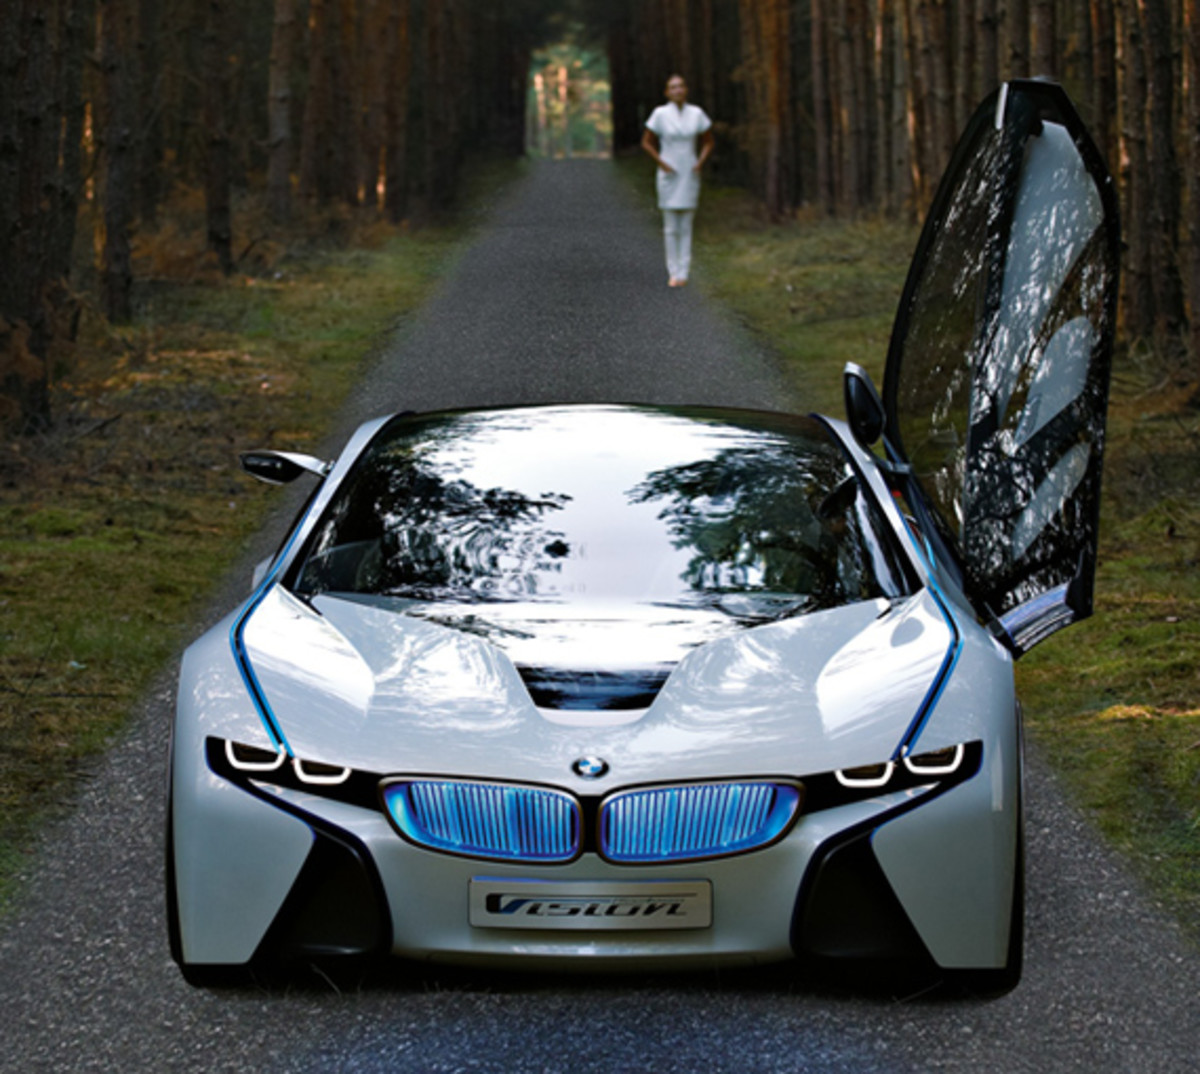 BMW-Vision-EfficientDynamics-woods-05